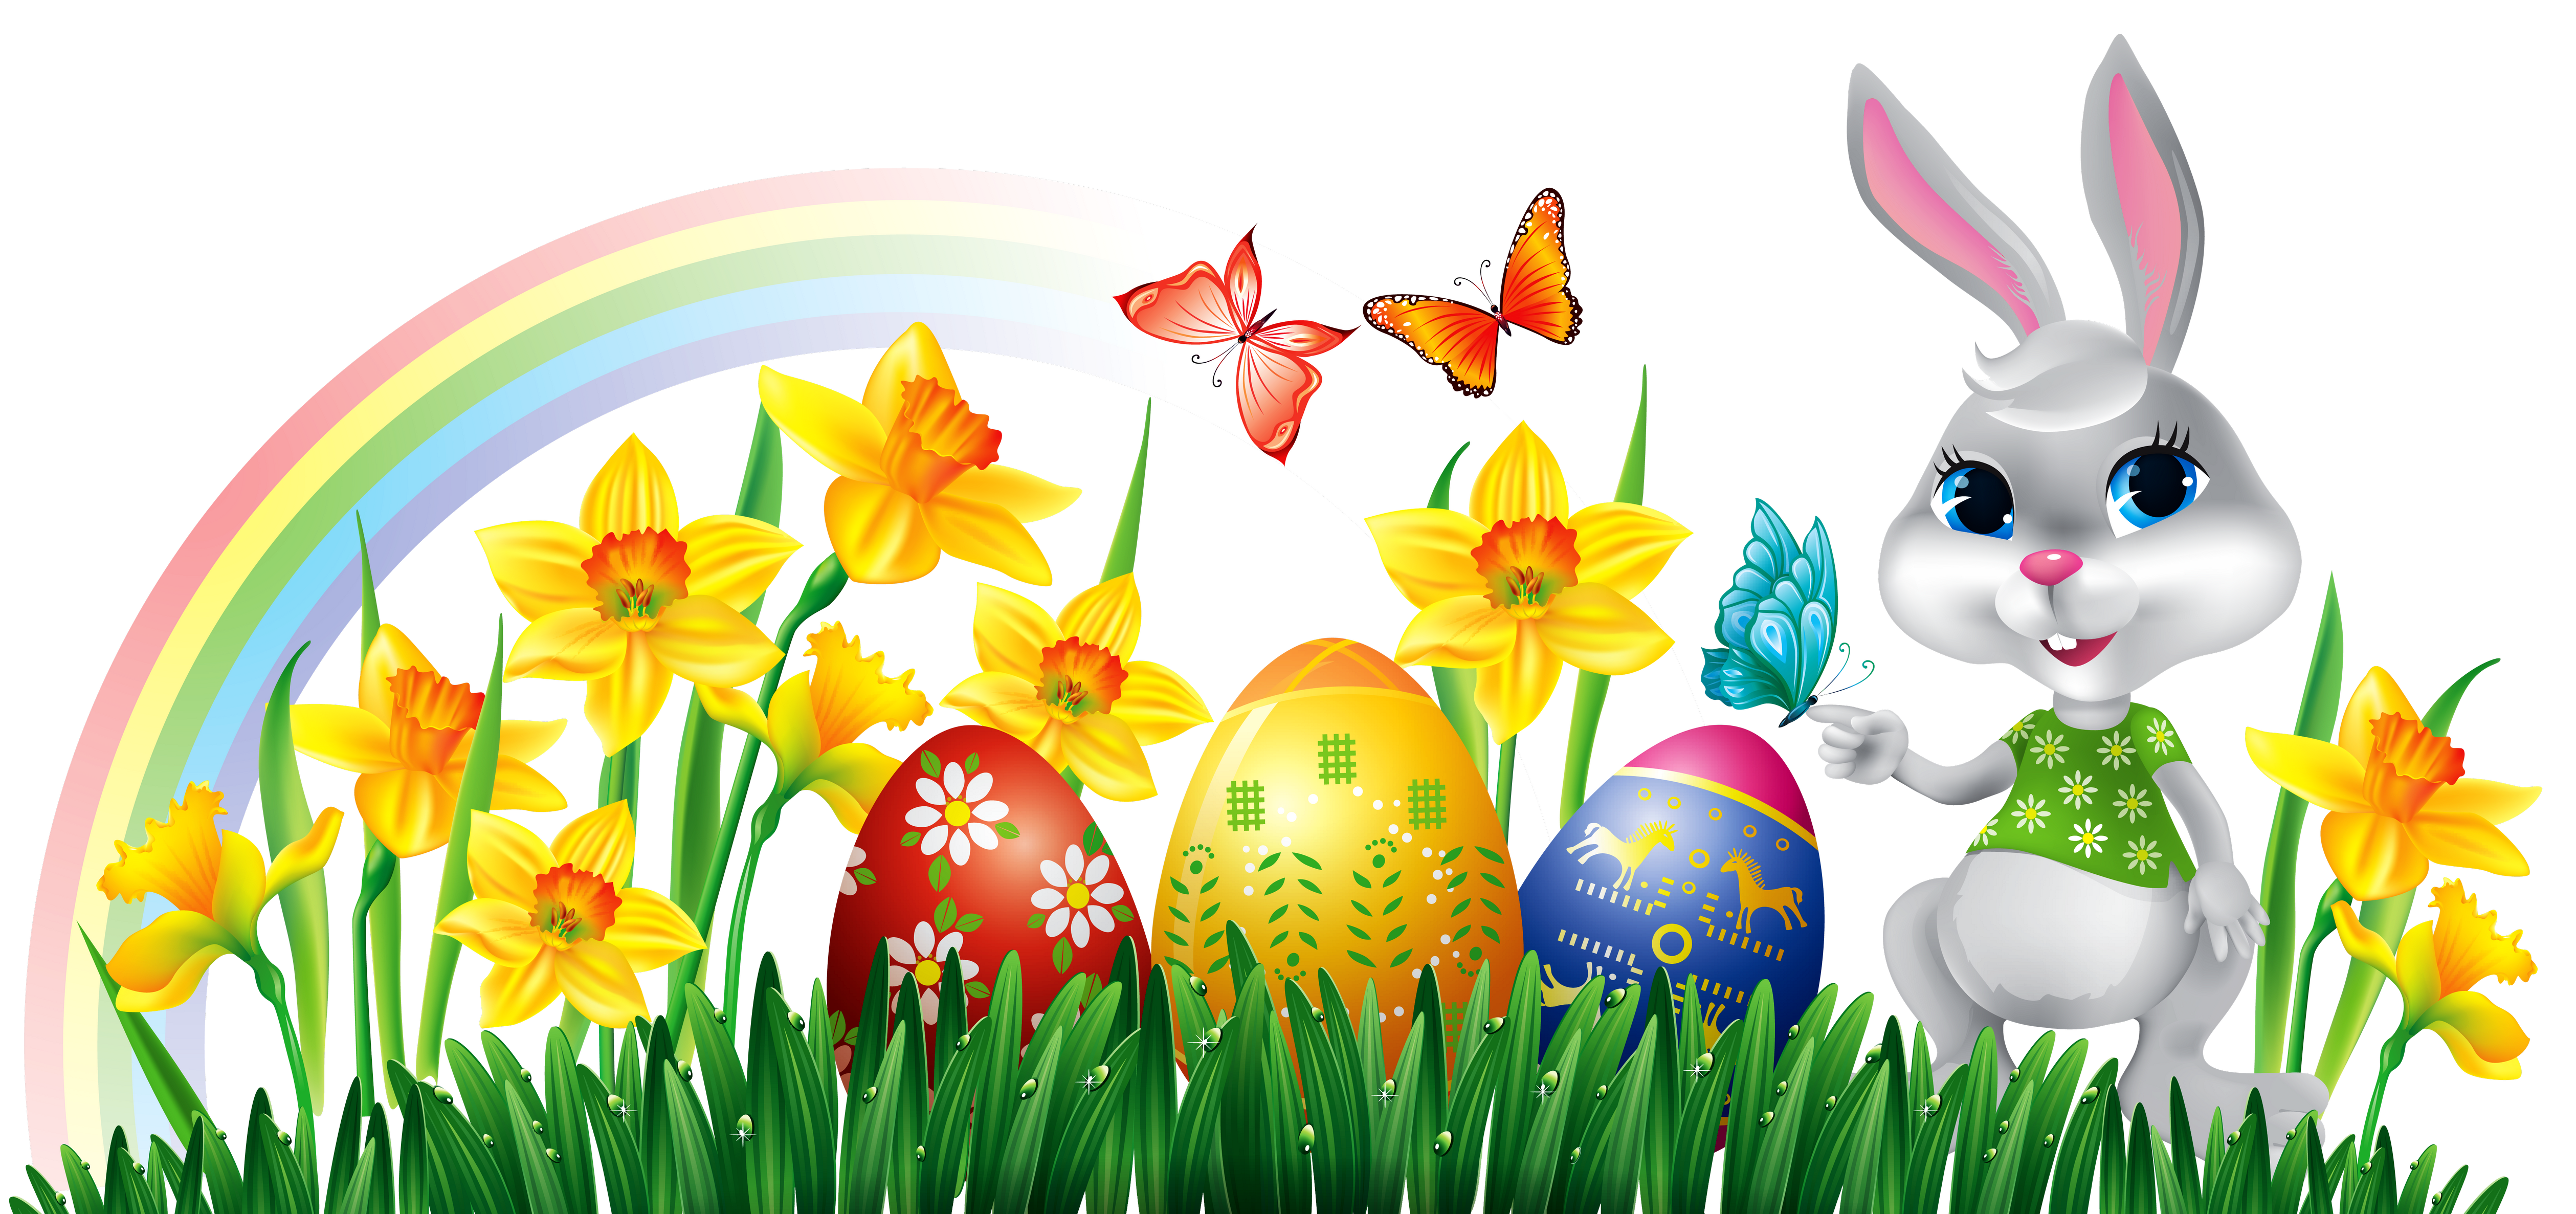 Easter clipart png jpg stock Easter Bunny with Daffodils Eggs and Grass Decor PNG Clipart Picture ... jpg stock